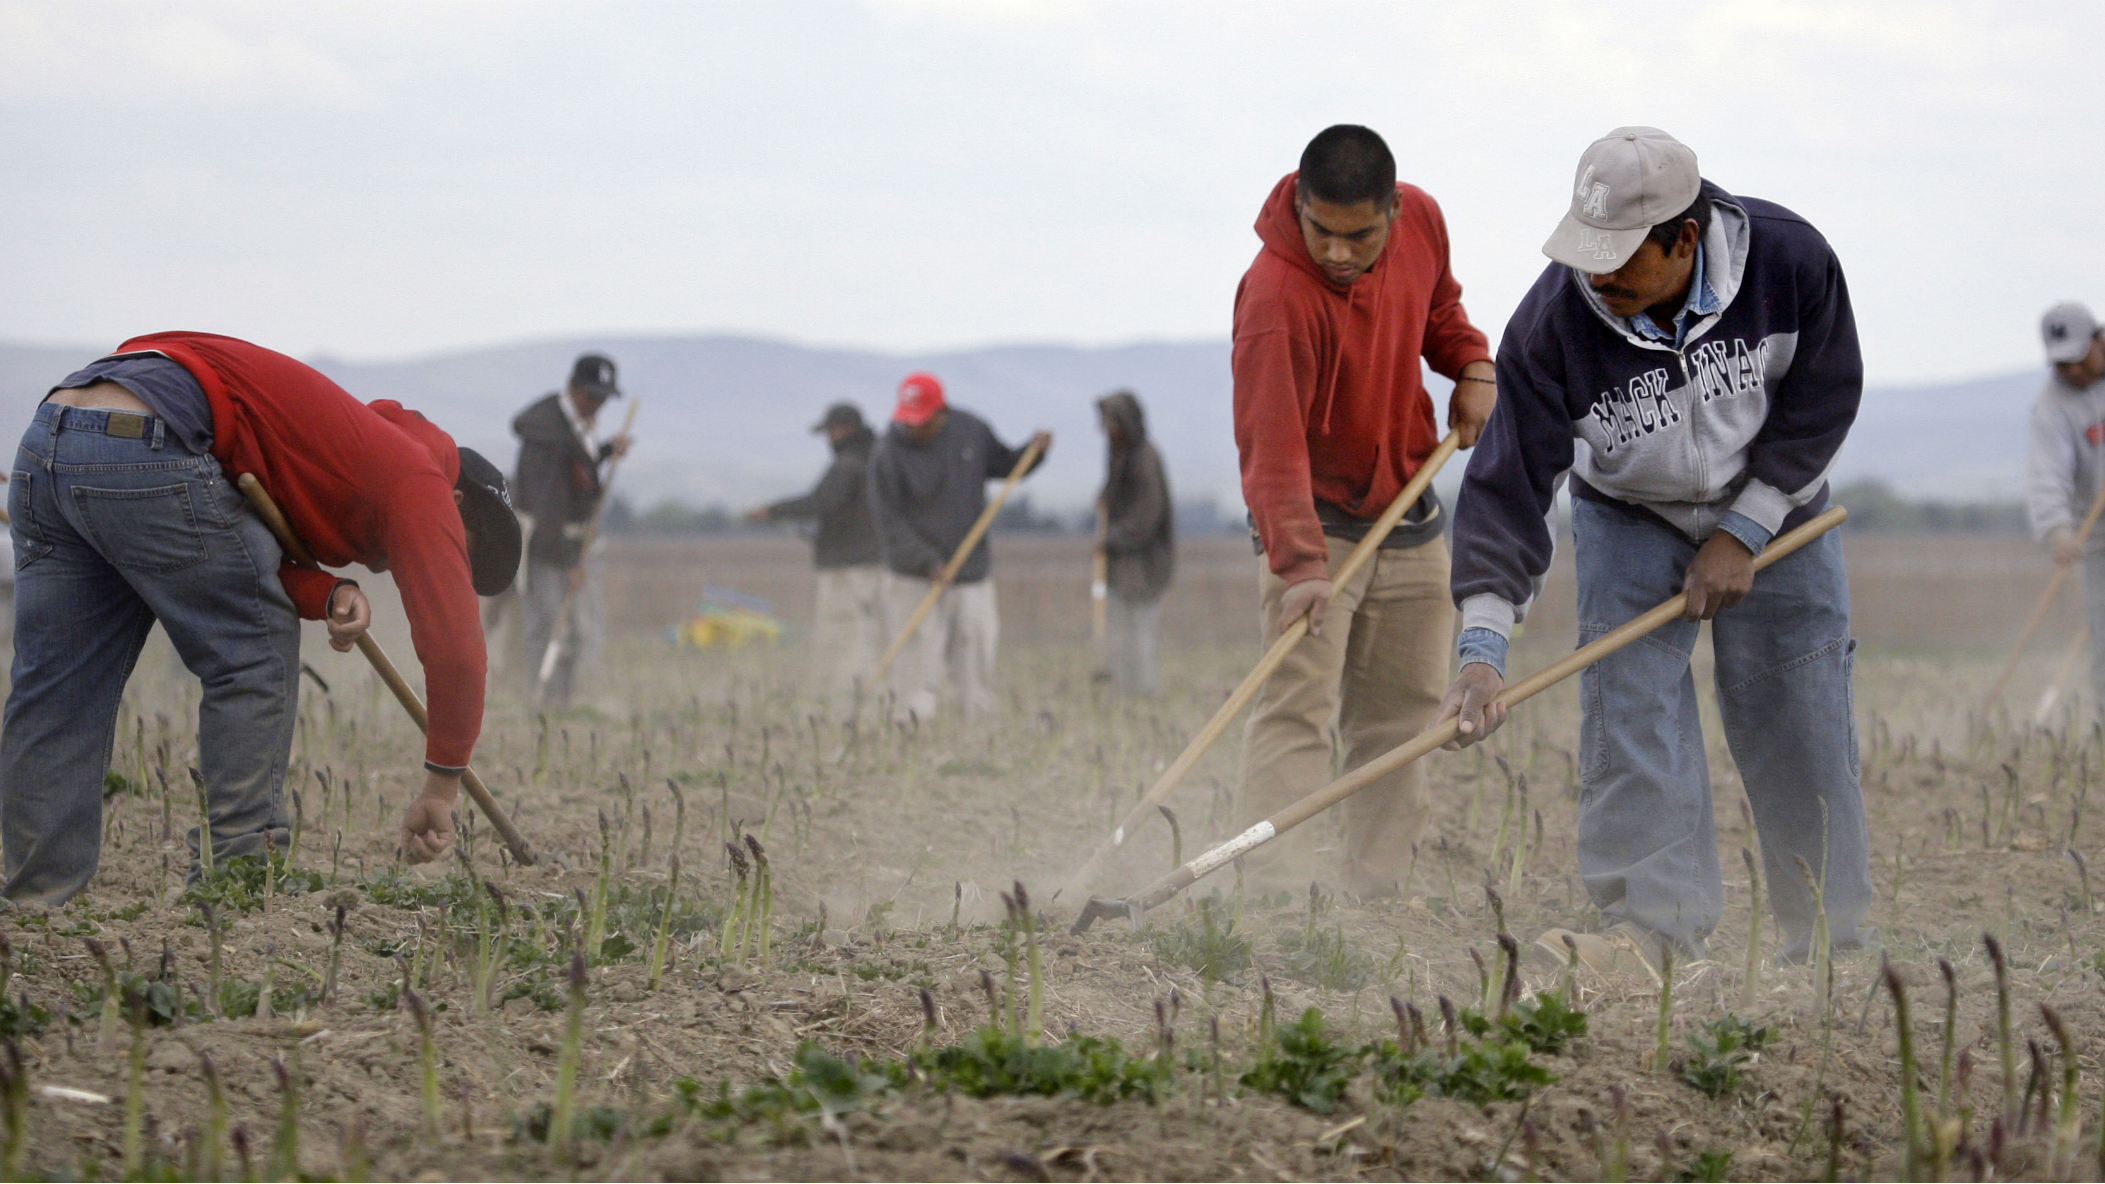 In this file photo taken April 27, 2009, Latino workers till an asparagus field near Toppenish, Wash., on the Yakama Indian Reservation. Bringing unlikely allies together, a measure being backed by both farmers and immigrant advocacy groups is hoping to slow down the use of a federal immigration program that check's a workers eligibility to work in the U.S. Known as E-Verify, the program has been adopted by 11 cities in Washington state. (AP Photo/Elaine Thompson